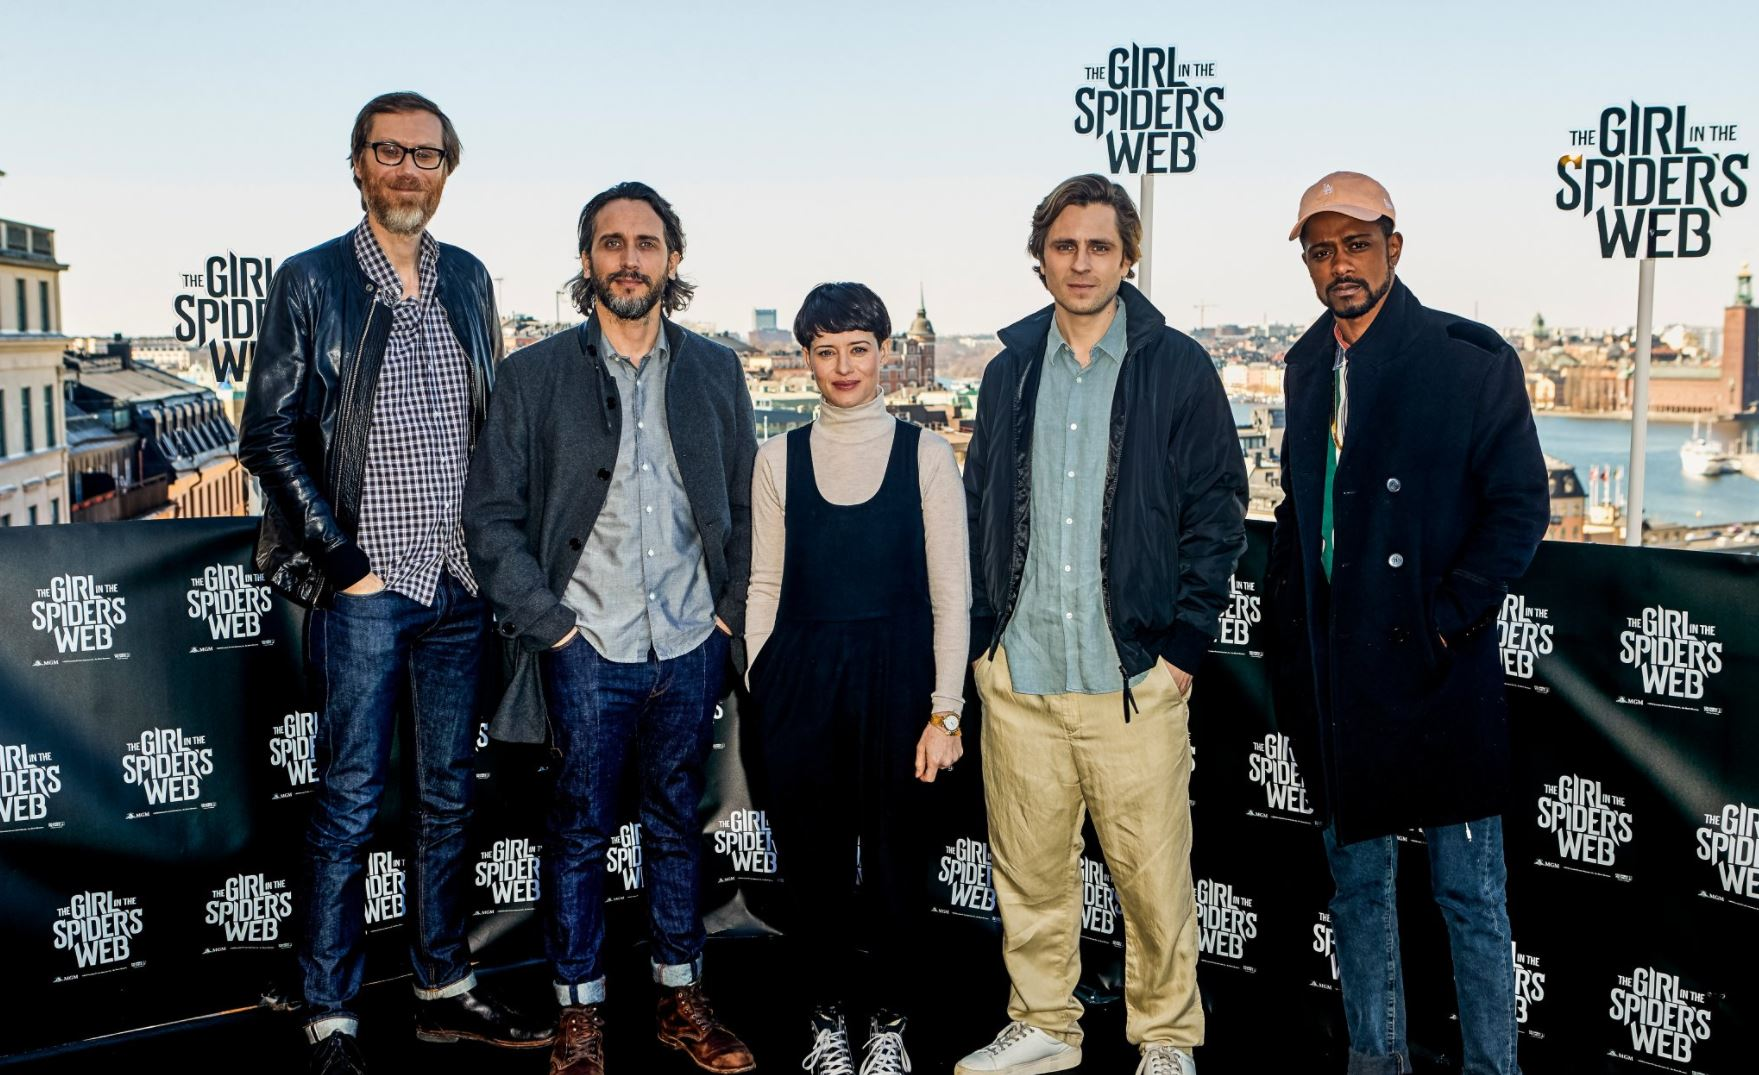 FIRST LOOK AT 'THE GIRL IN THE SPIDER'S WEB' CAST